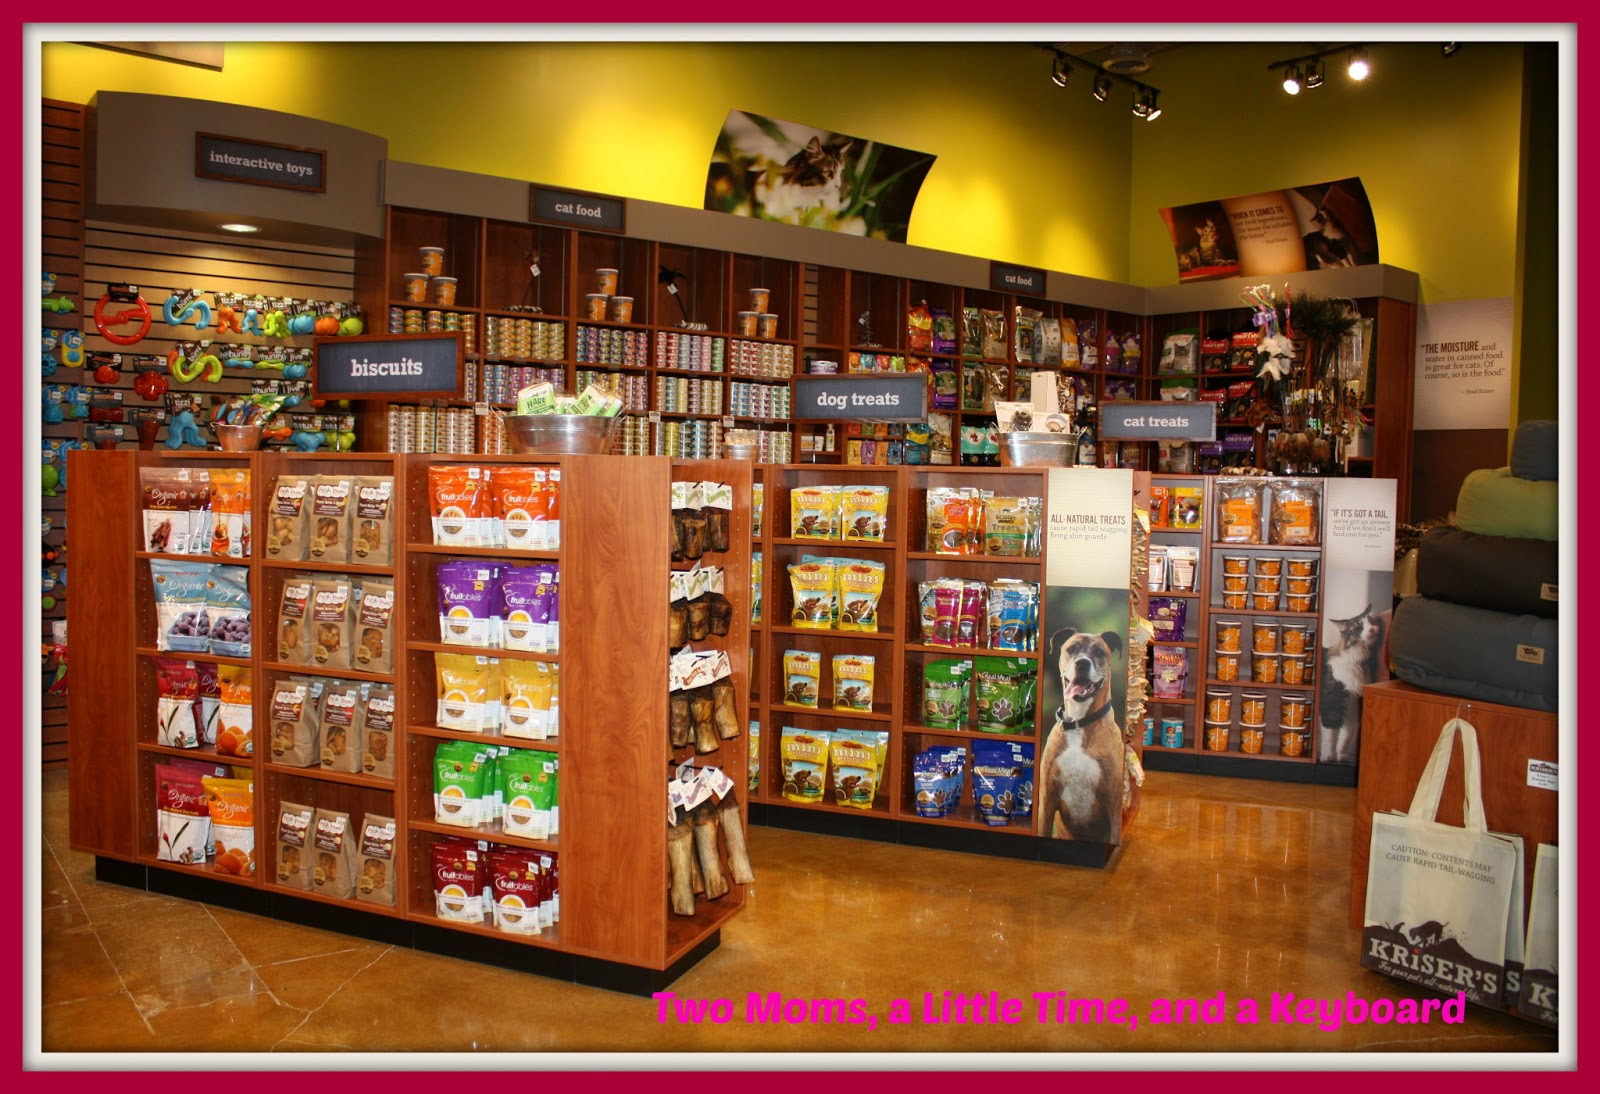 If you want to keep your beloved pet healthy for less, the Pet Supermarket online store has got you covered. Purchase some of the top pet supplies at a discount and even shop brand name pet foods at some amazingly low prices at Pet Supermarket online.5/5(1).